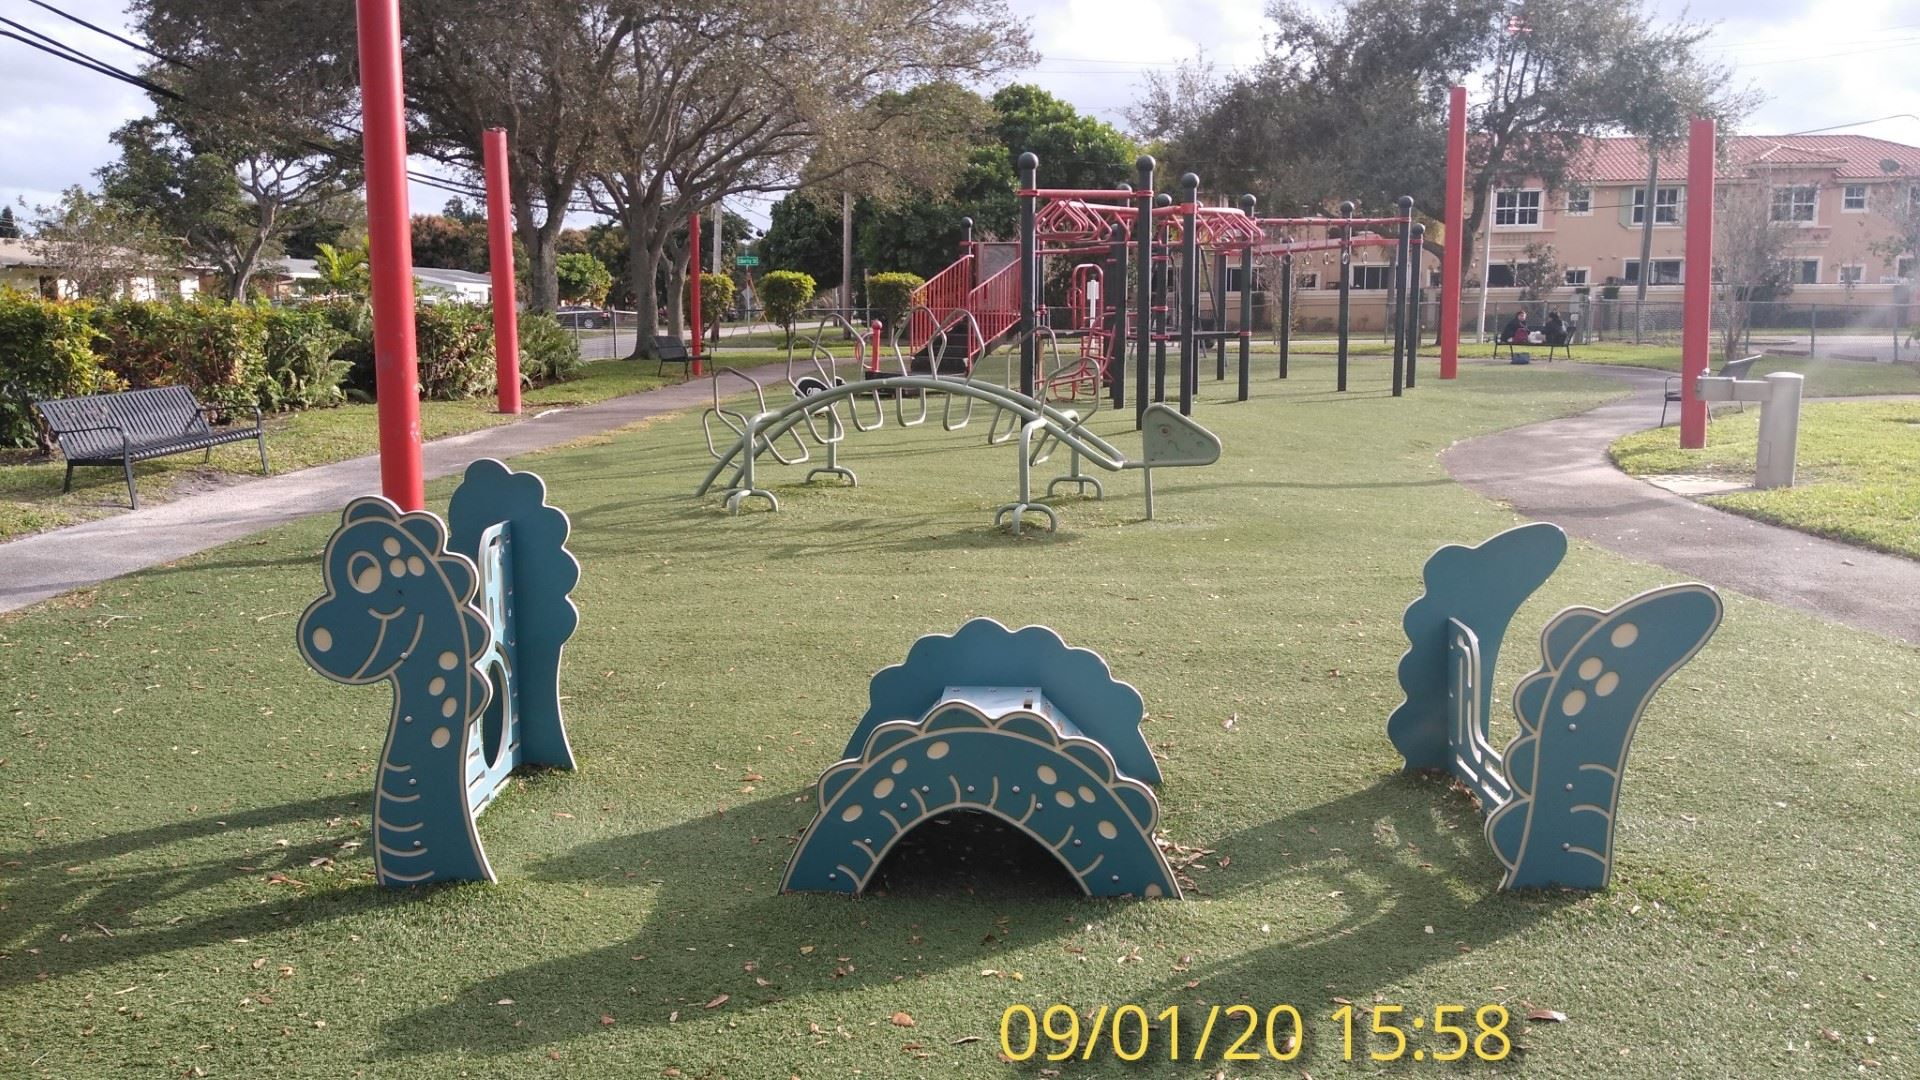 Playground looking S 1/9/20